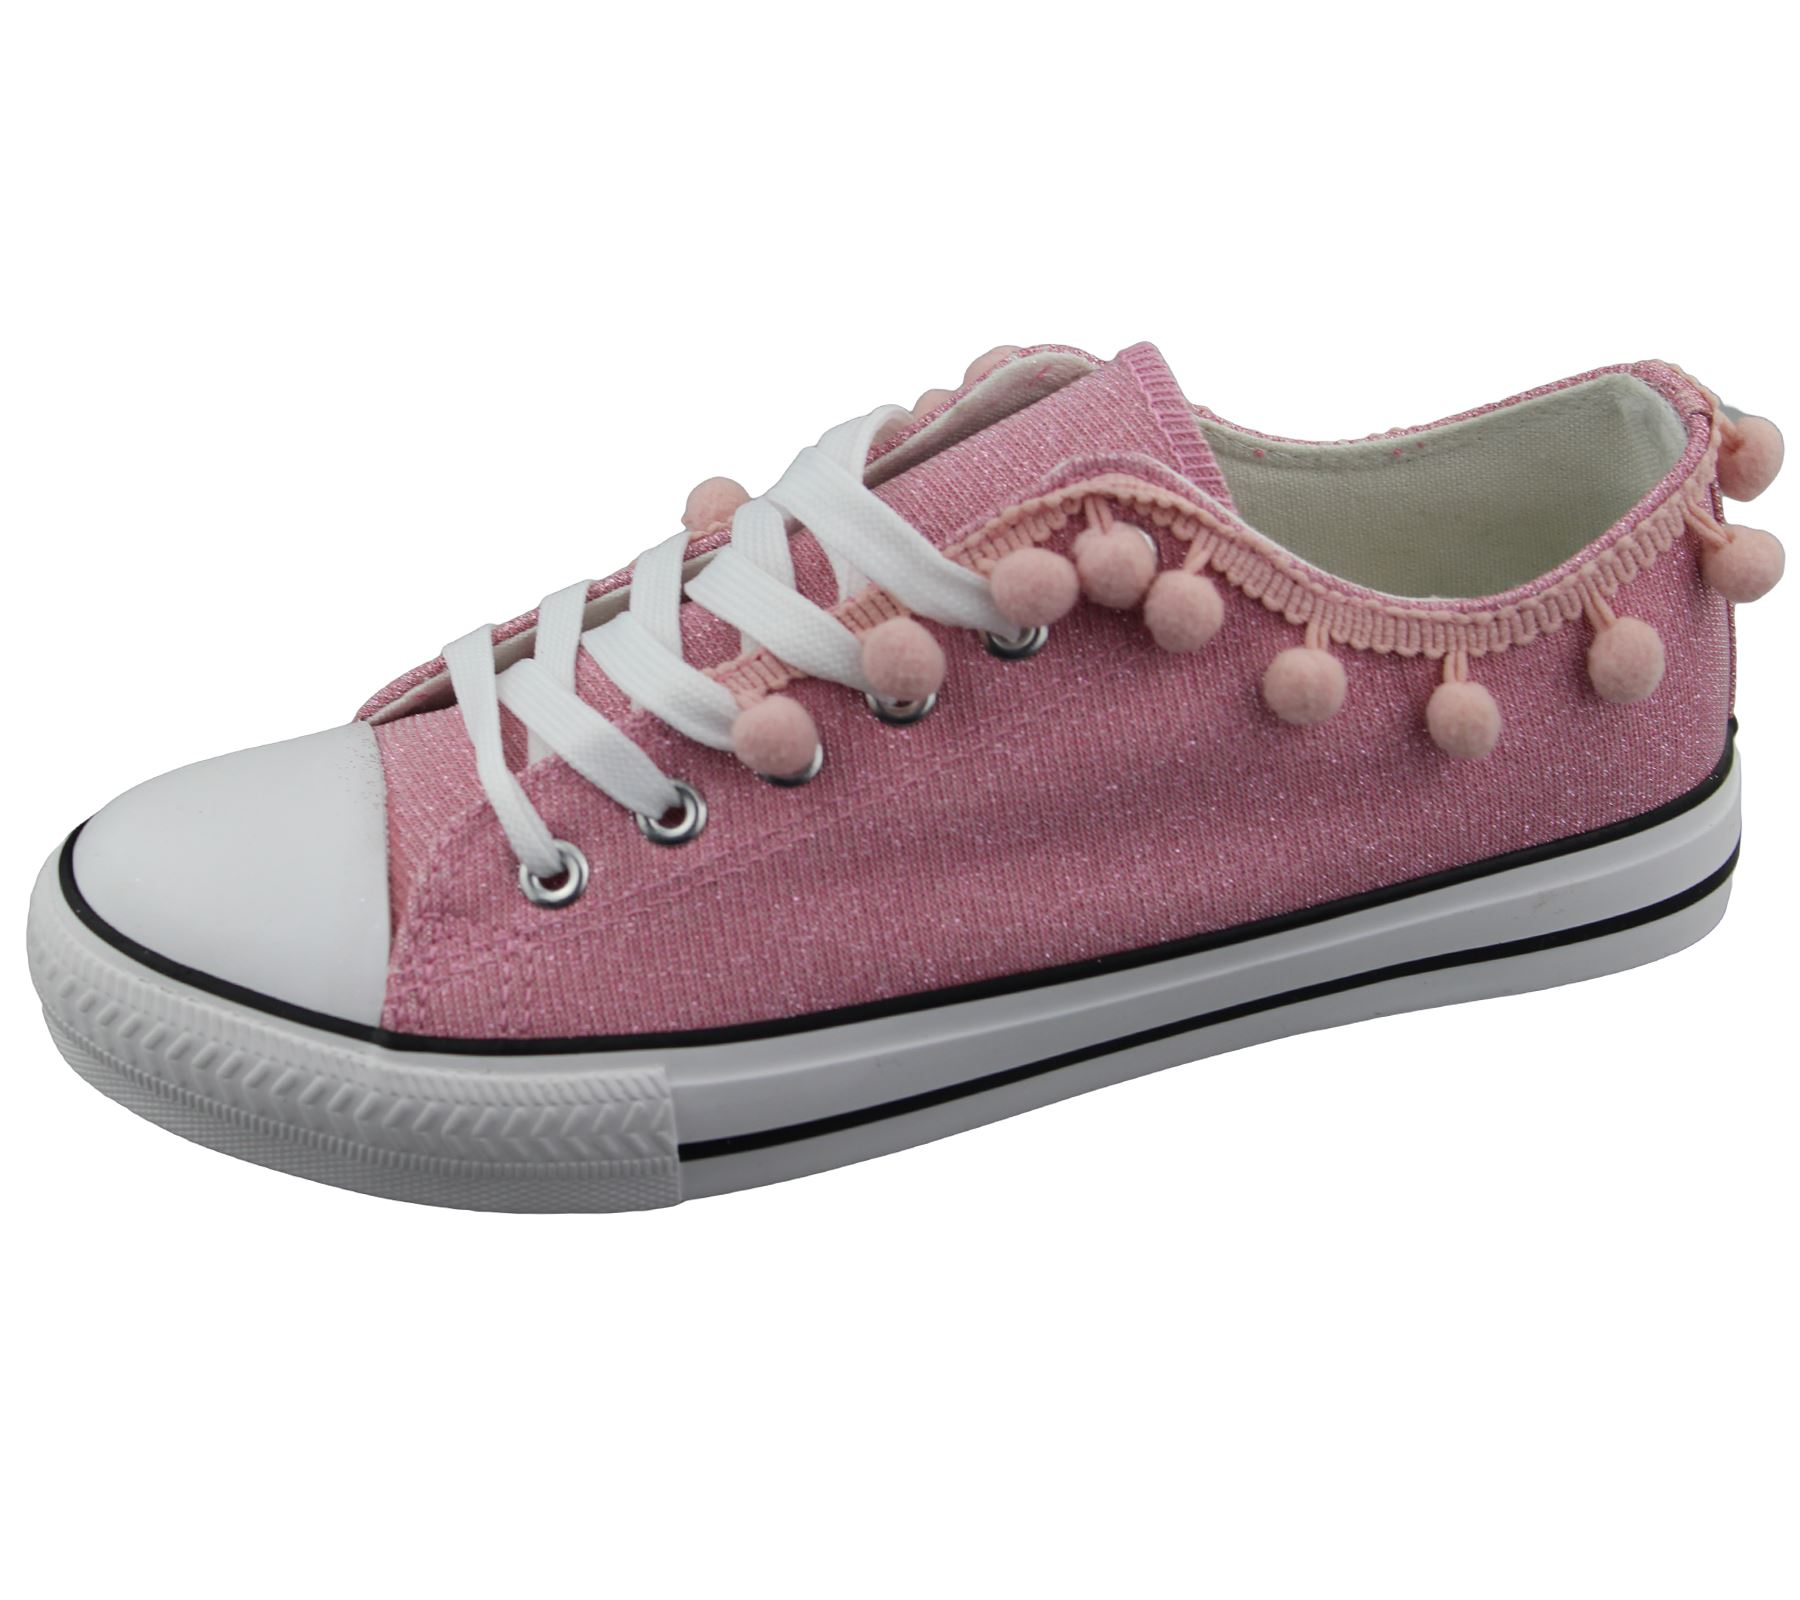 Womens Sneakers Flat Pumps Ladies Glittered Summer Plimsole Canvas Shoes